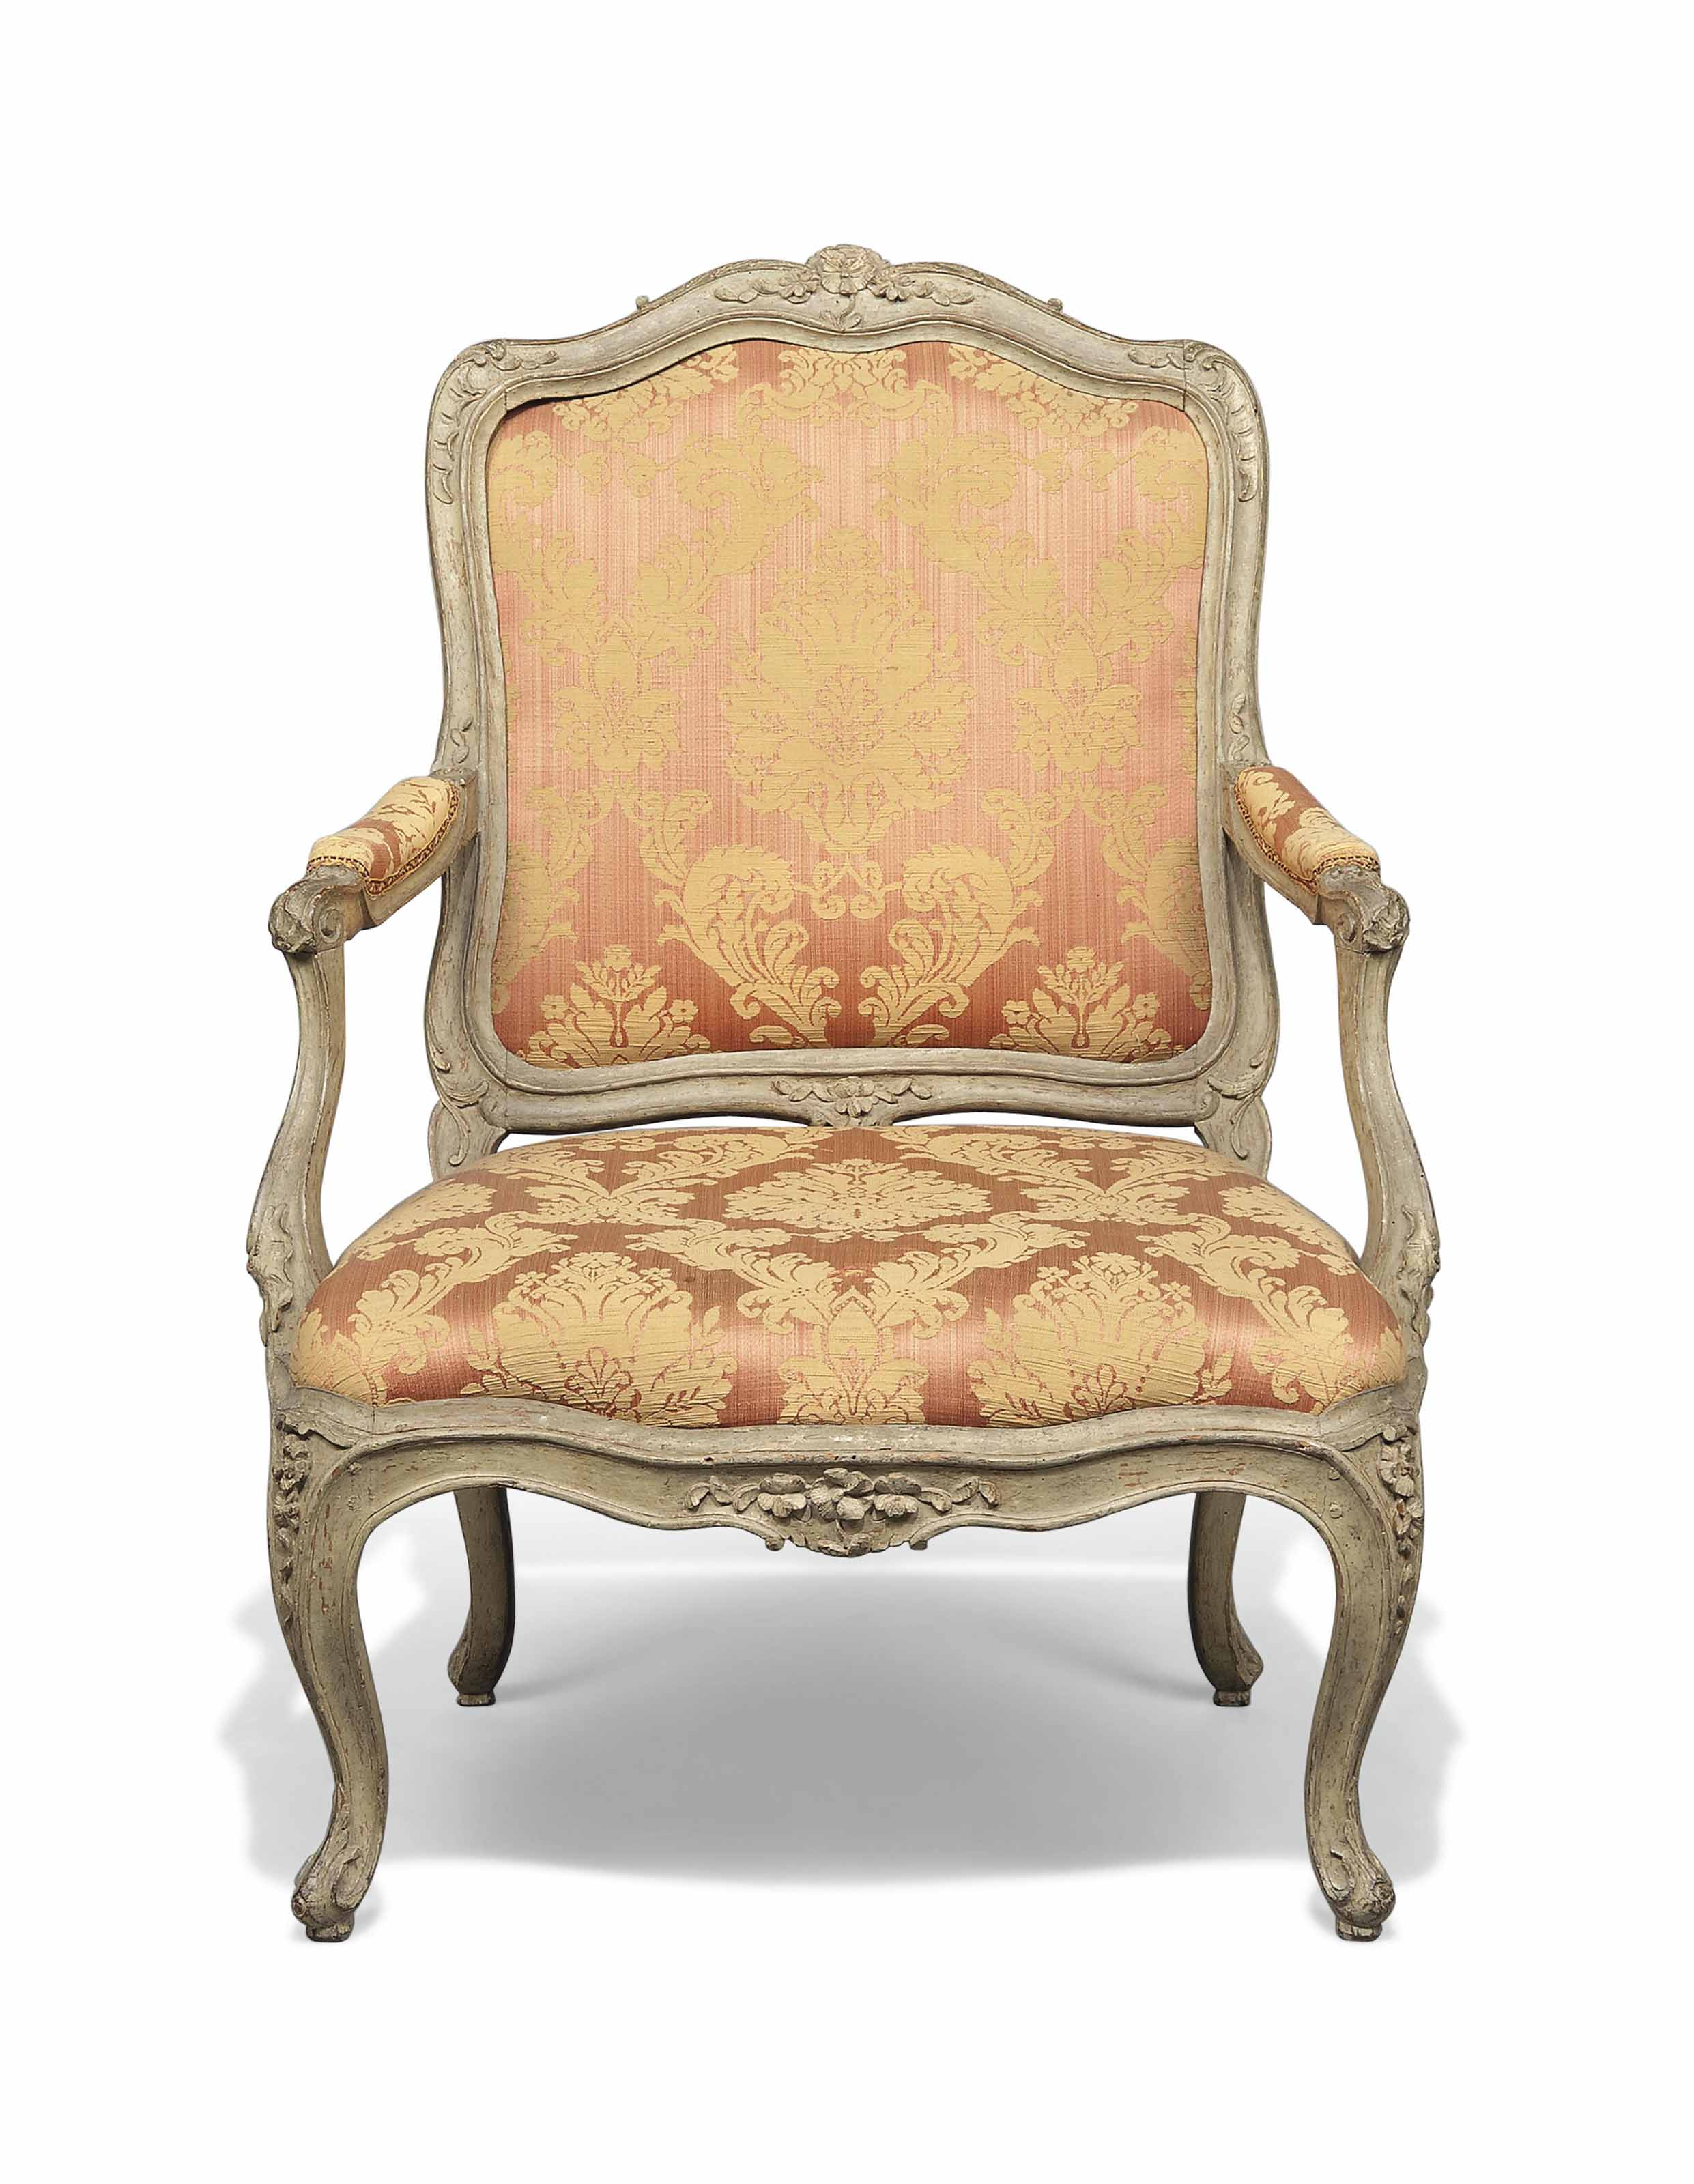 A LOUIS XV PALE GREEN-PAINTED